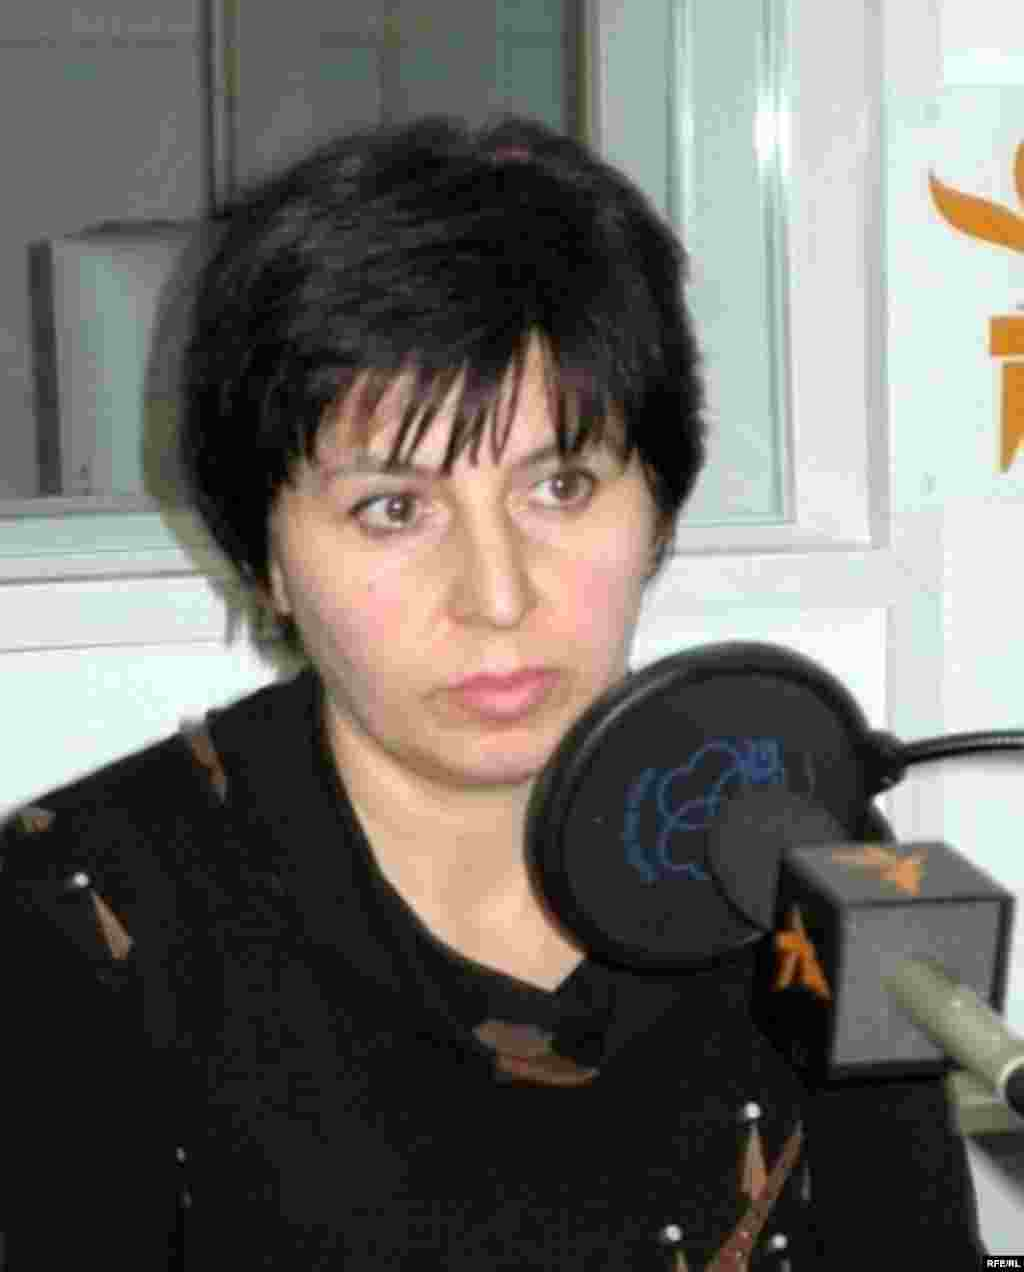 Ella Kesayeva, chairwoman of Voice of Beslan, speaking to RFE/RL in December 2006 (RFE/RL) - Like others in Beslan, Kesayeva believes President Vladimir Putin's government is covering up what happened.